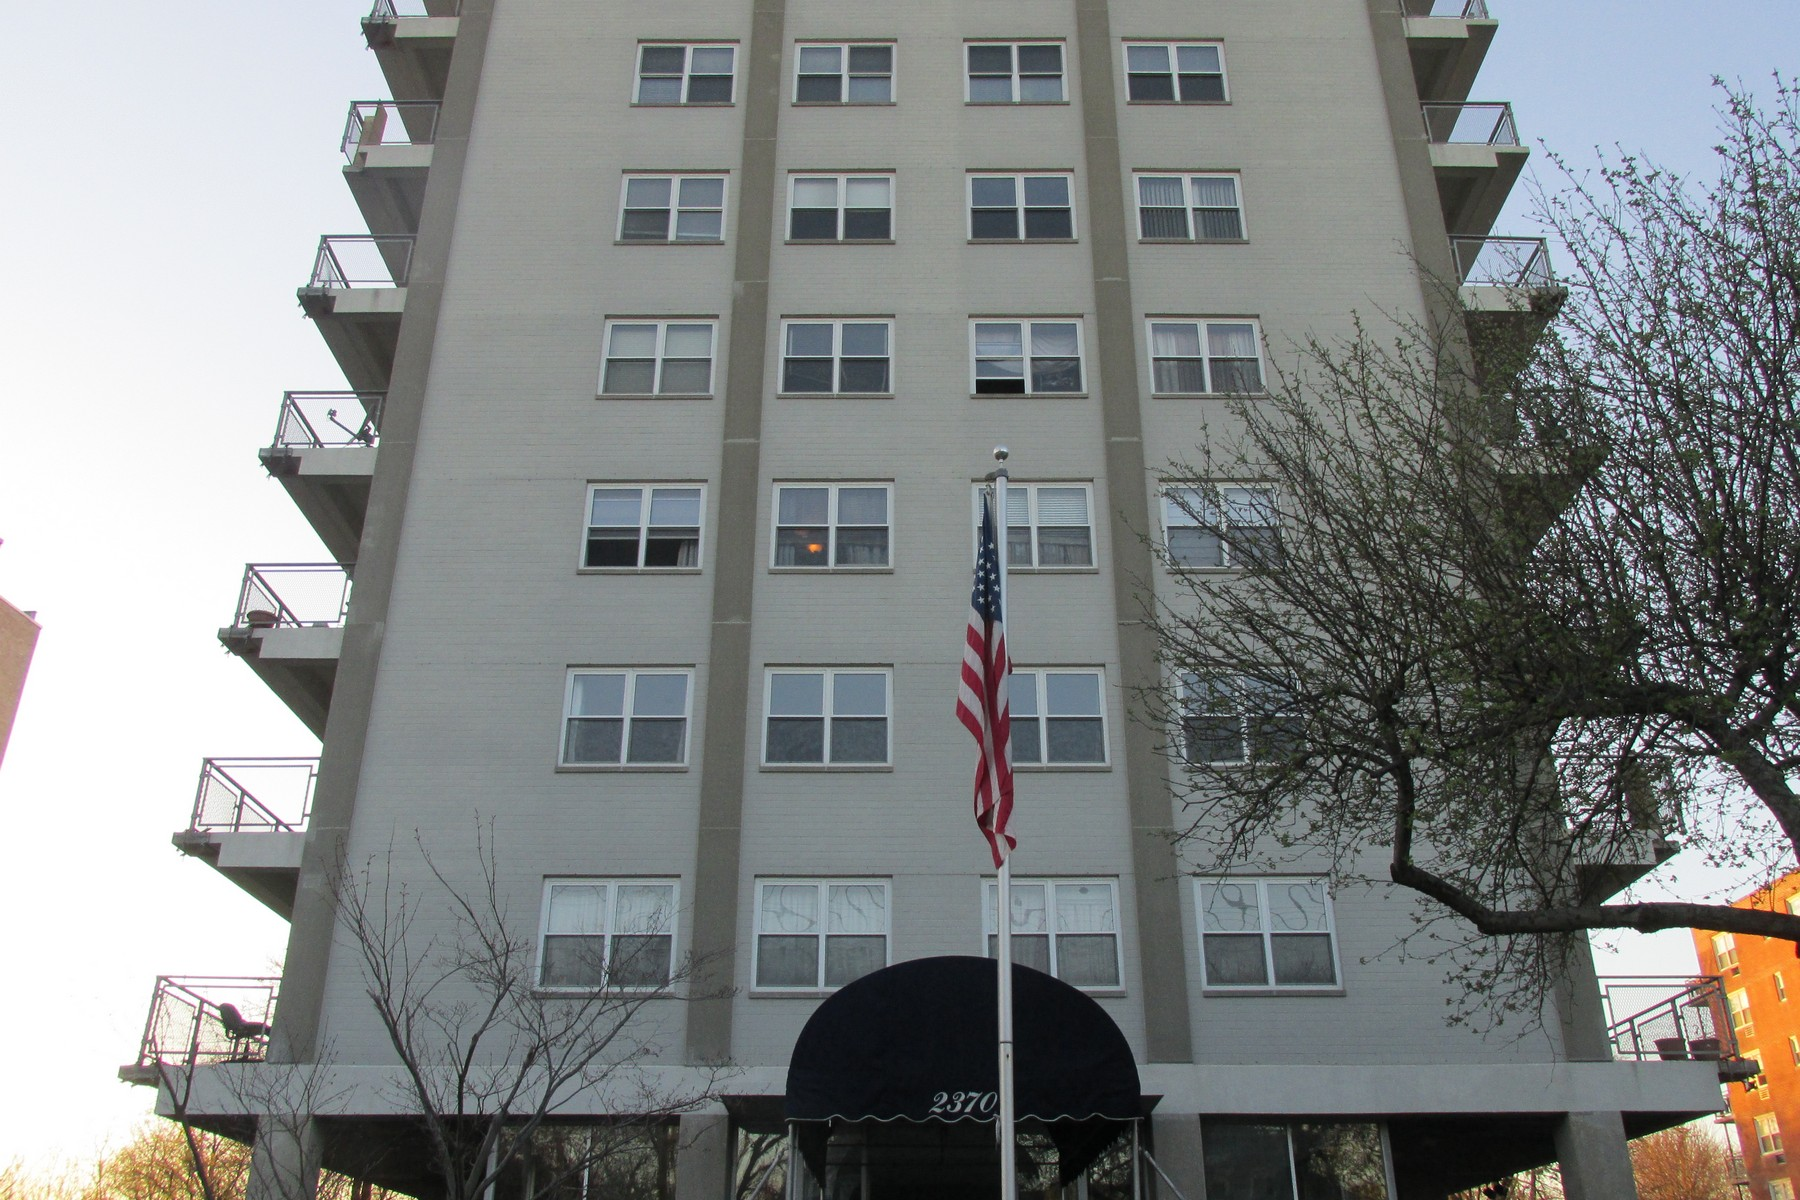 para Venda às Beautiful 8th Floor End Unit 2370 North Avenue 8B Bridgeport, Connecticut, 06604 Estados Unidos